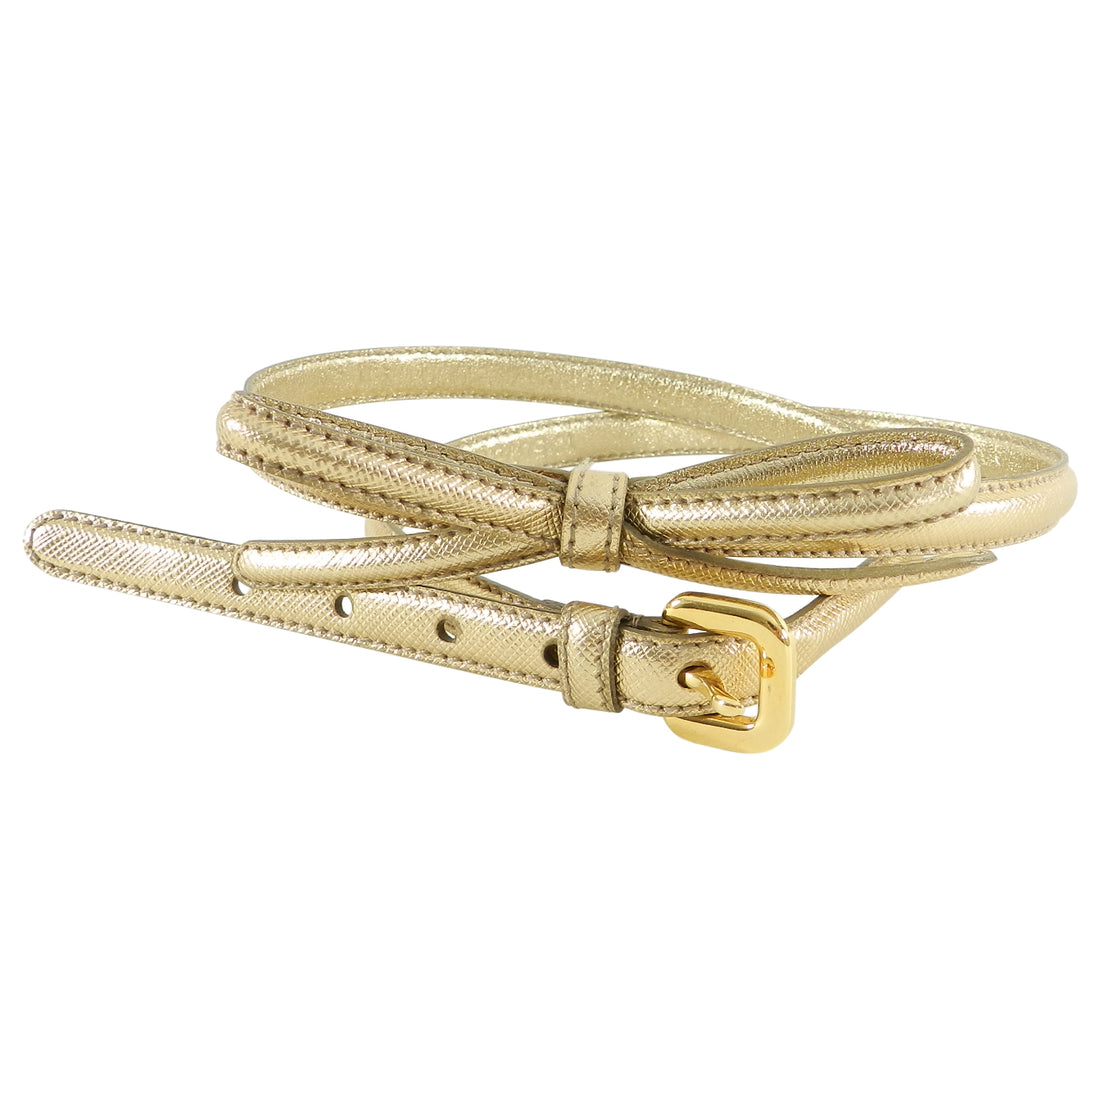 Prada Thin Gold Saffiano Leather Bow Belt